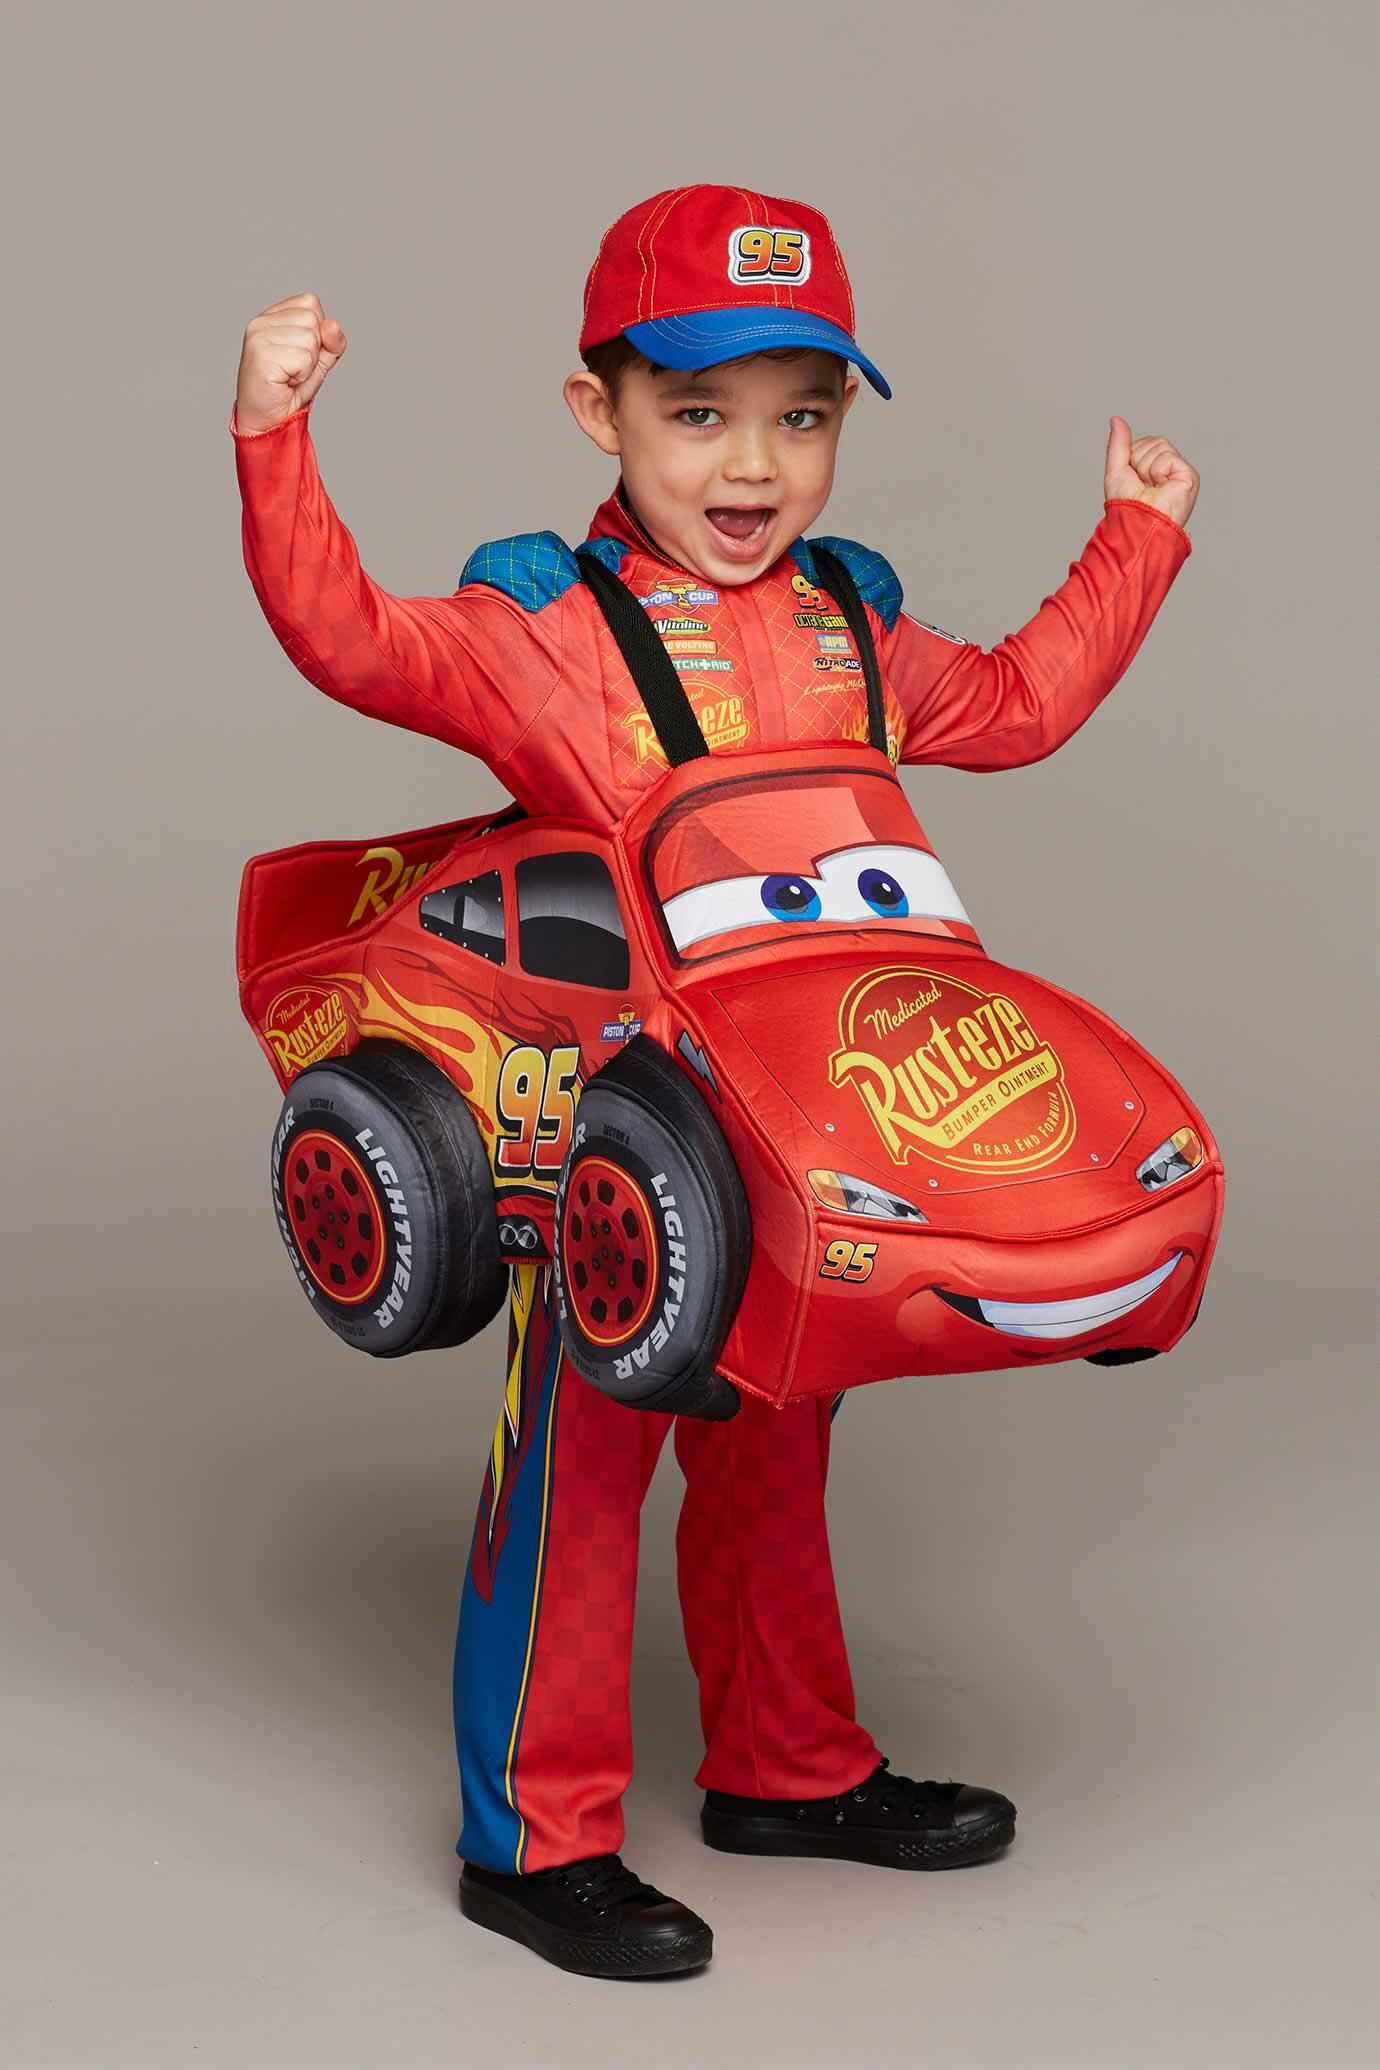 Cars 3 Lightning McQueen Costume for Kids #Chasingfireflies $89.00  sc 1 st  Pinterest & Cars 3 Lightning McQueen Costume for Kids: #Chasingfireflies $89.00 ...